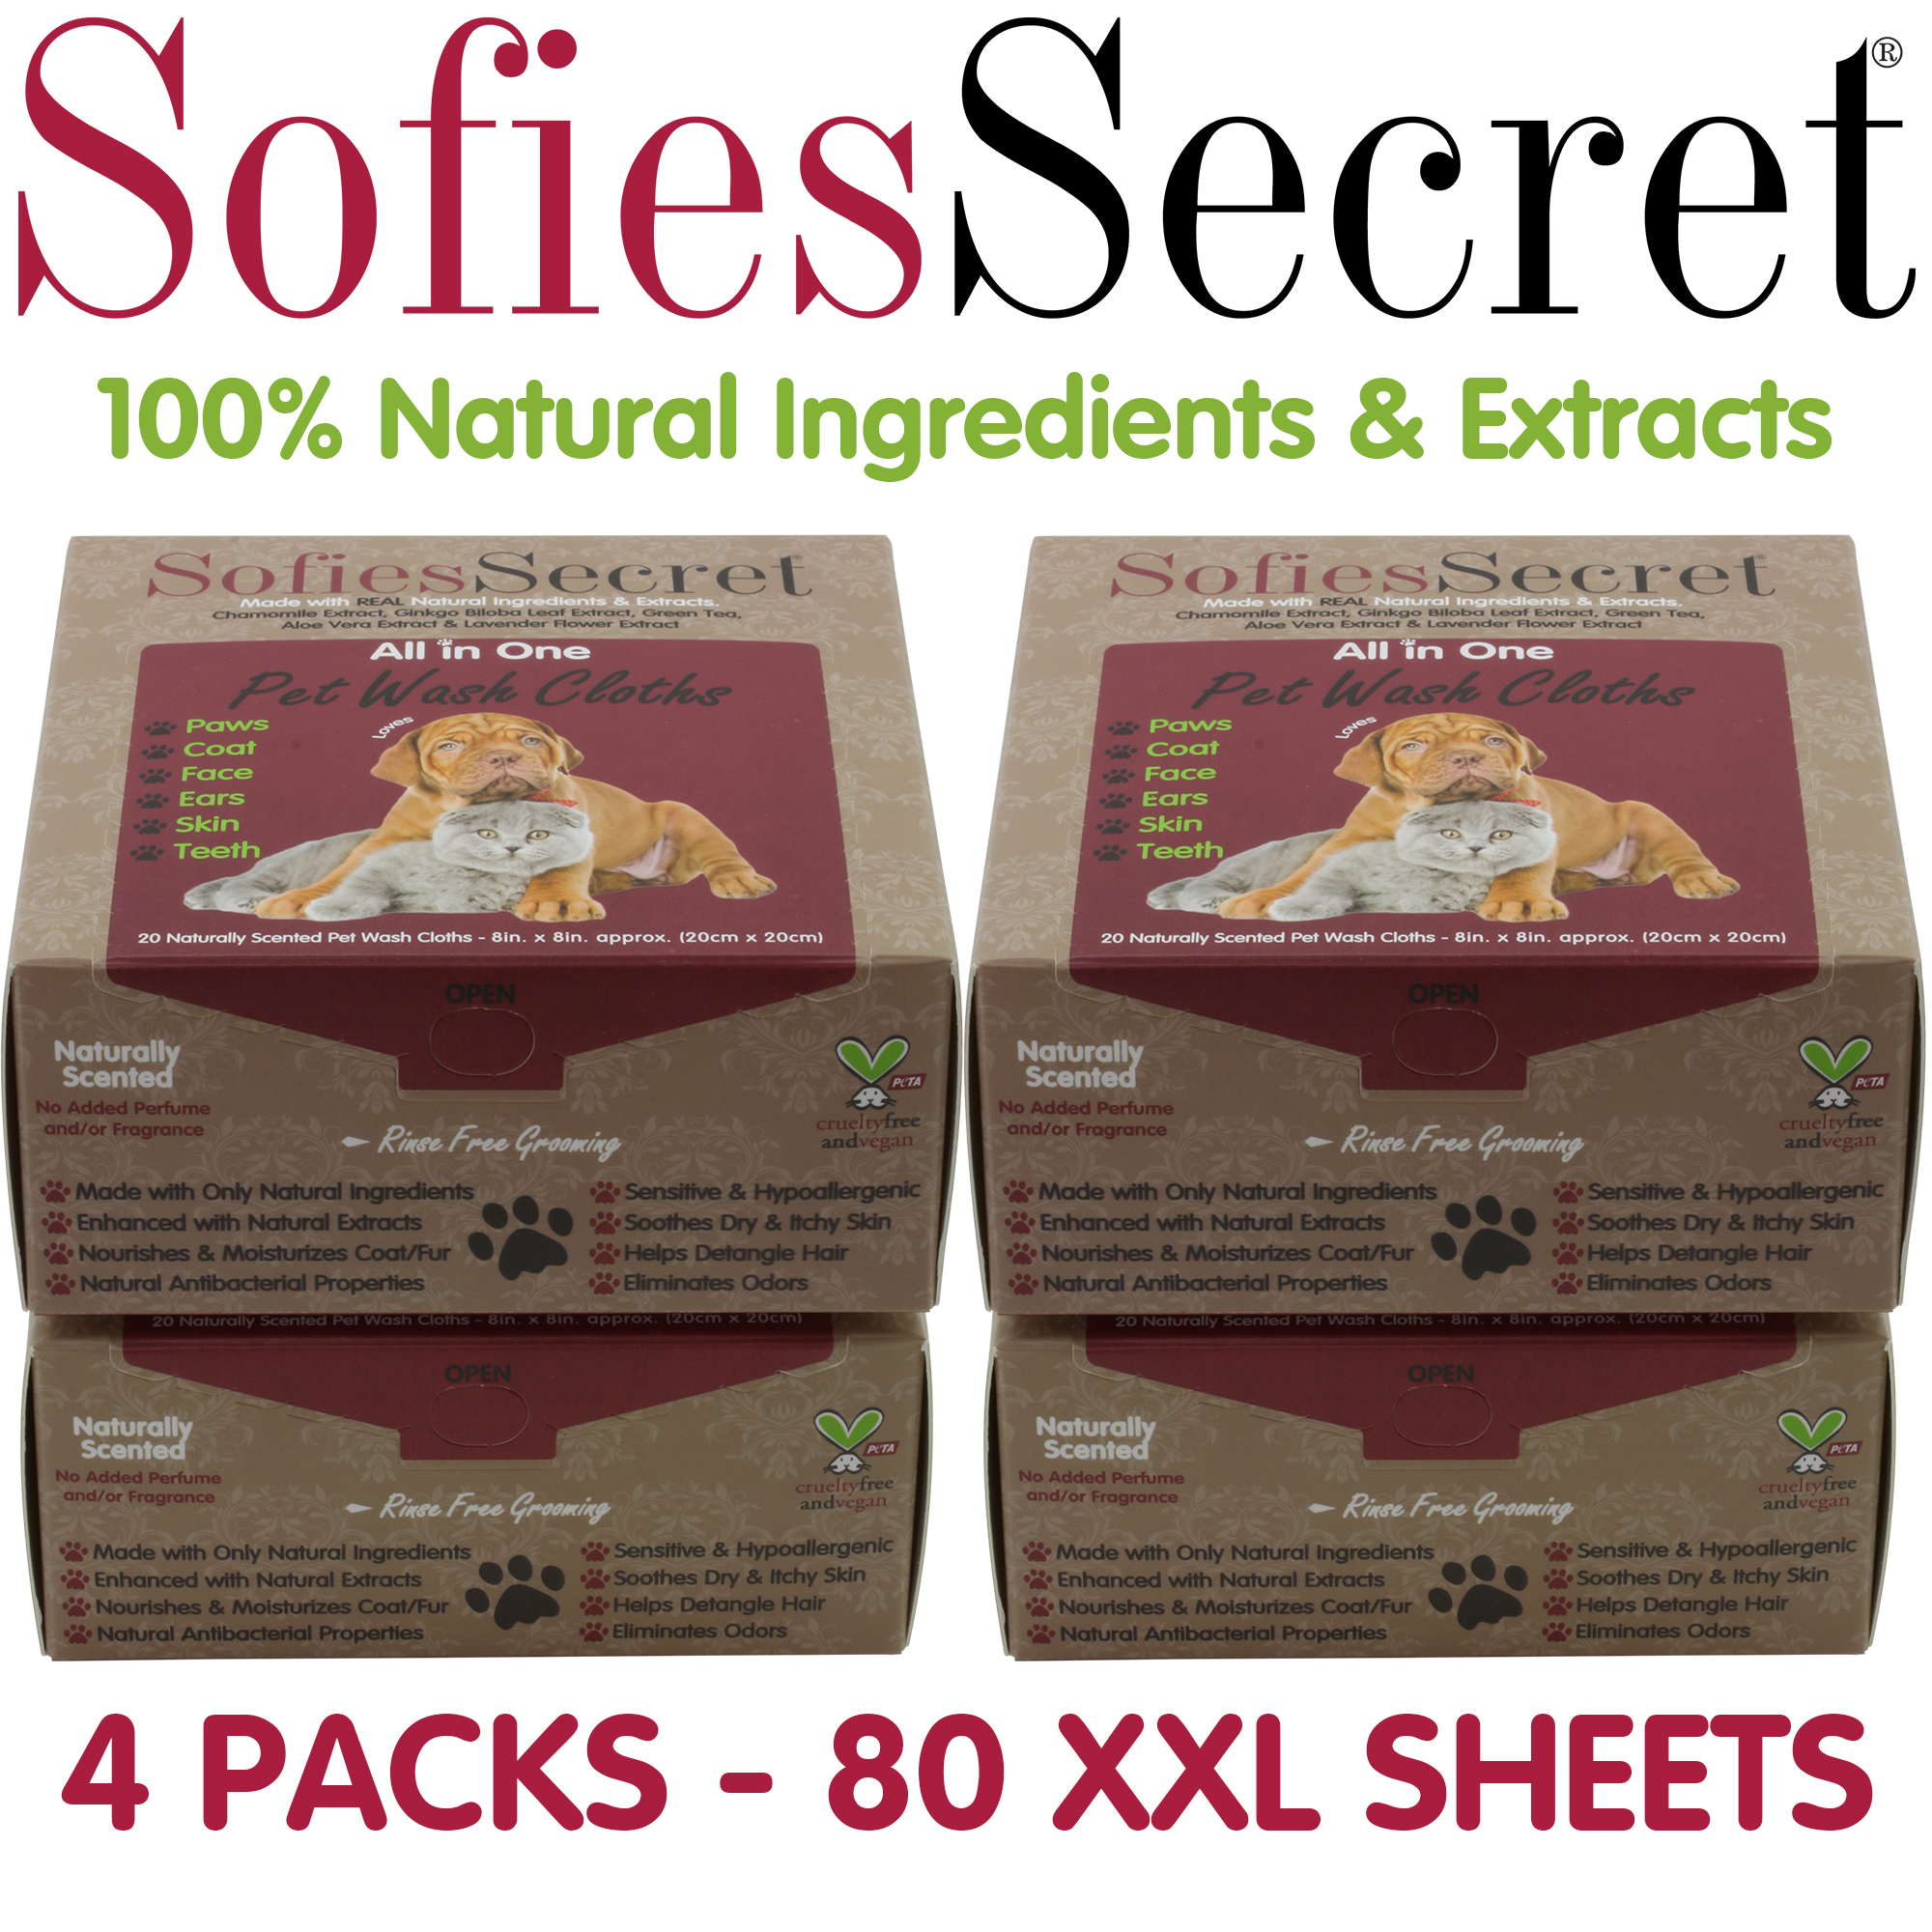 SofiesSecret Pet Wipes Dogs+Cats, 80 sheets, ALL IN ONE, 100% Natural & Organic Extracts, Extra Thick, Ultra Soft, Extra Large,Hypoallergenic, Cruelty Free & Vegan